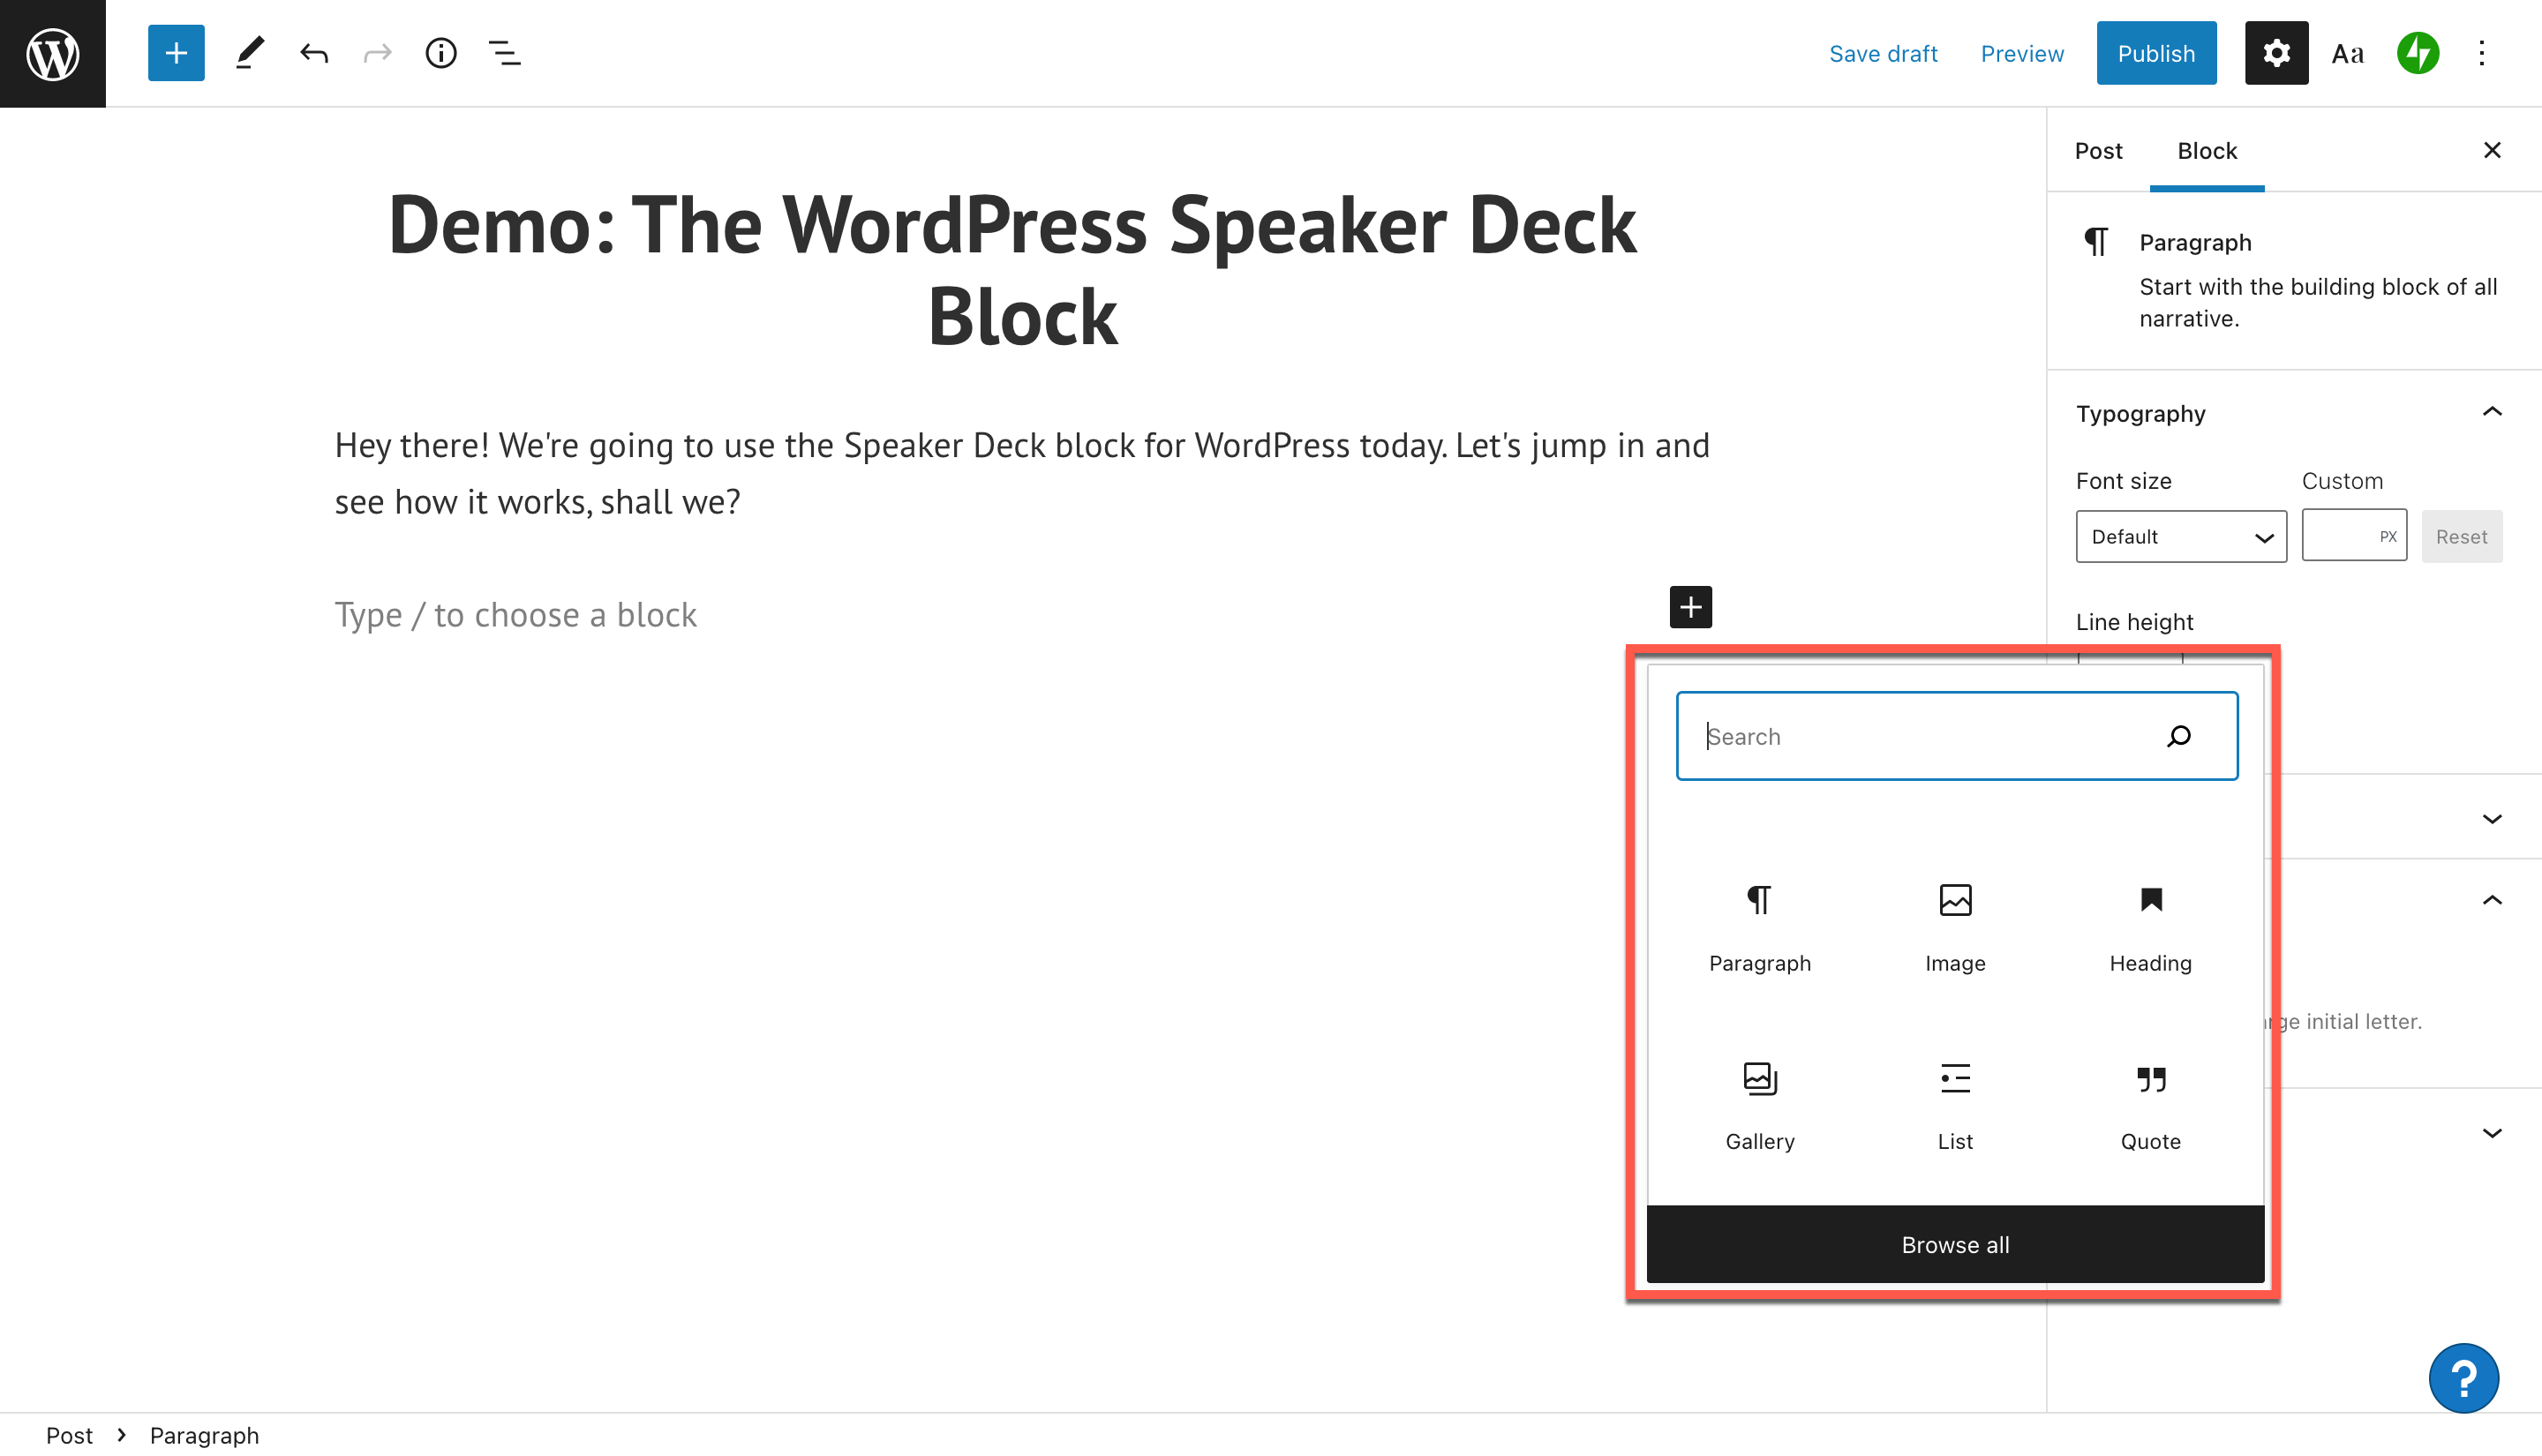 how-to-use-the-wordpress-speaker-deck-embed-block-1 如何使用 WordPress Speaker Deck 嵌入块